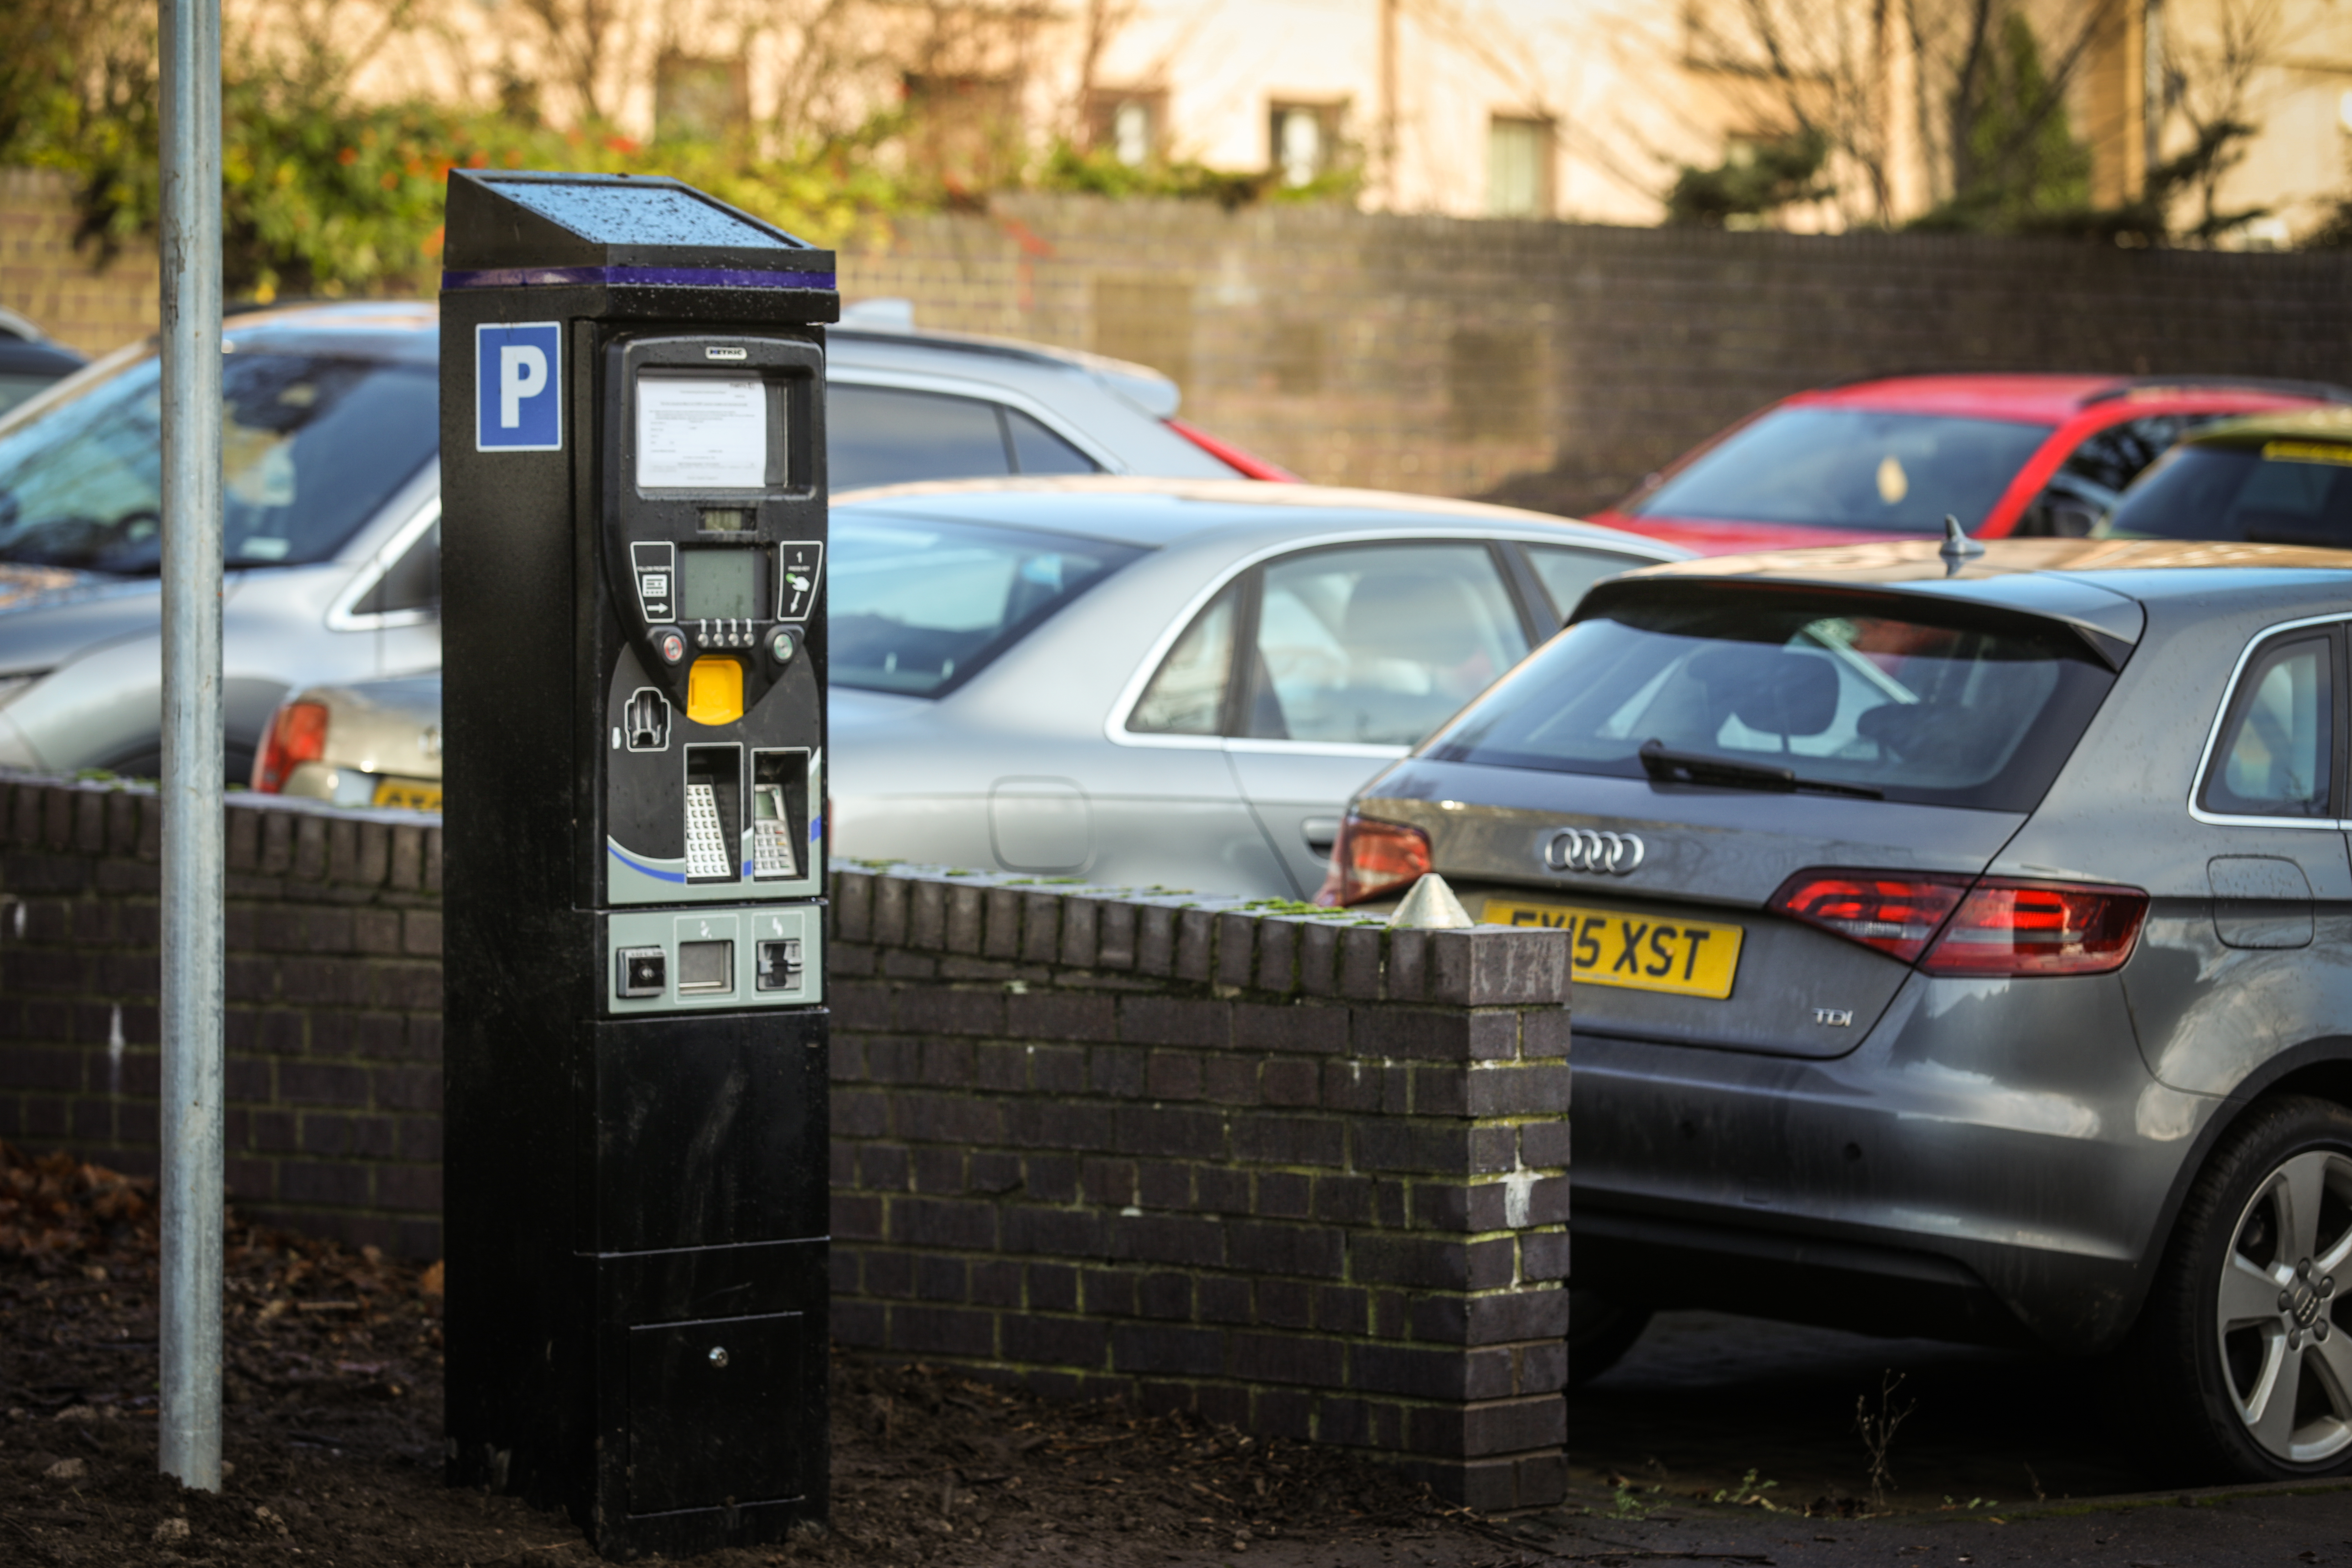 A newly installed parking meter in Pennycook Lane carpark